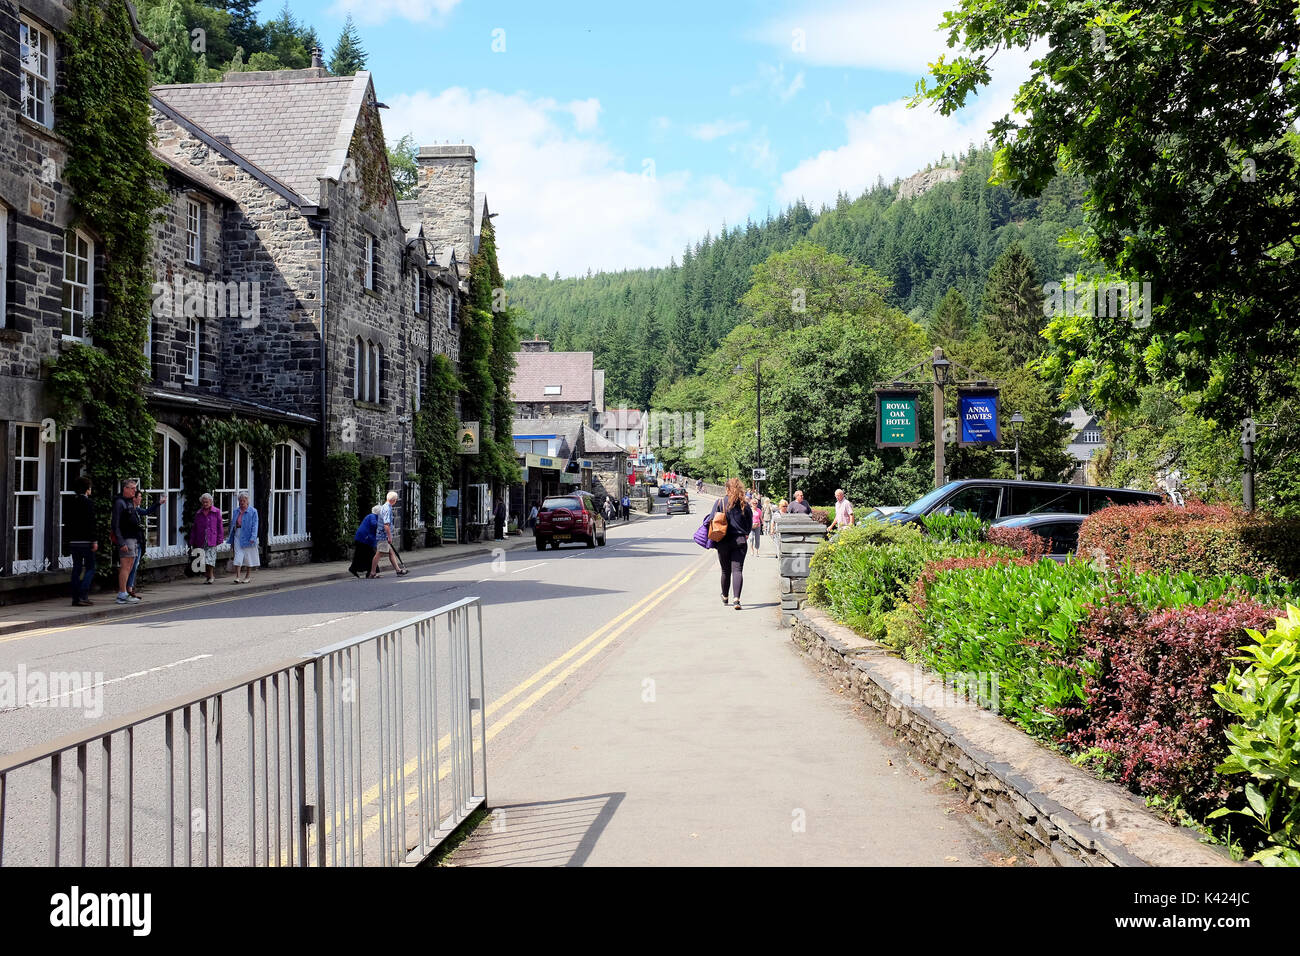 Conwy Valley Wales Immagini   Conwy Valley Wales Fotos Stock - Alamy f0b67f747c